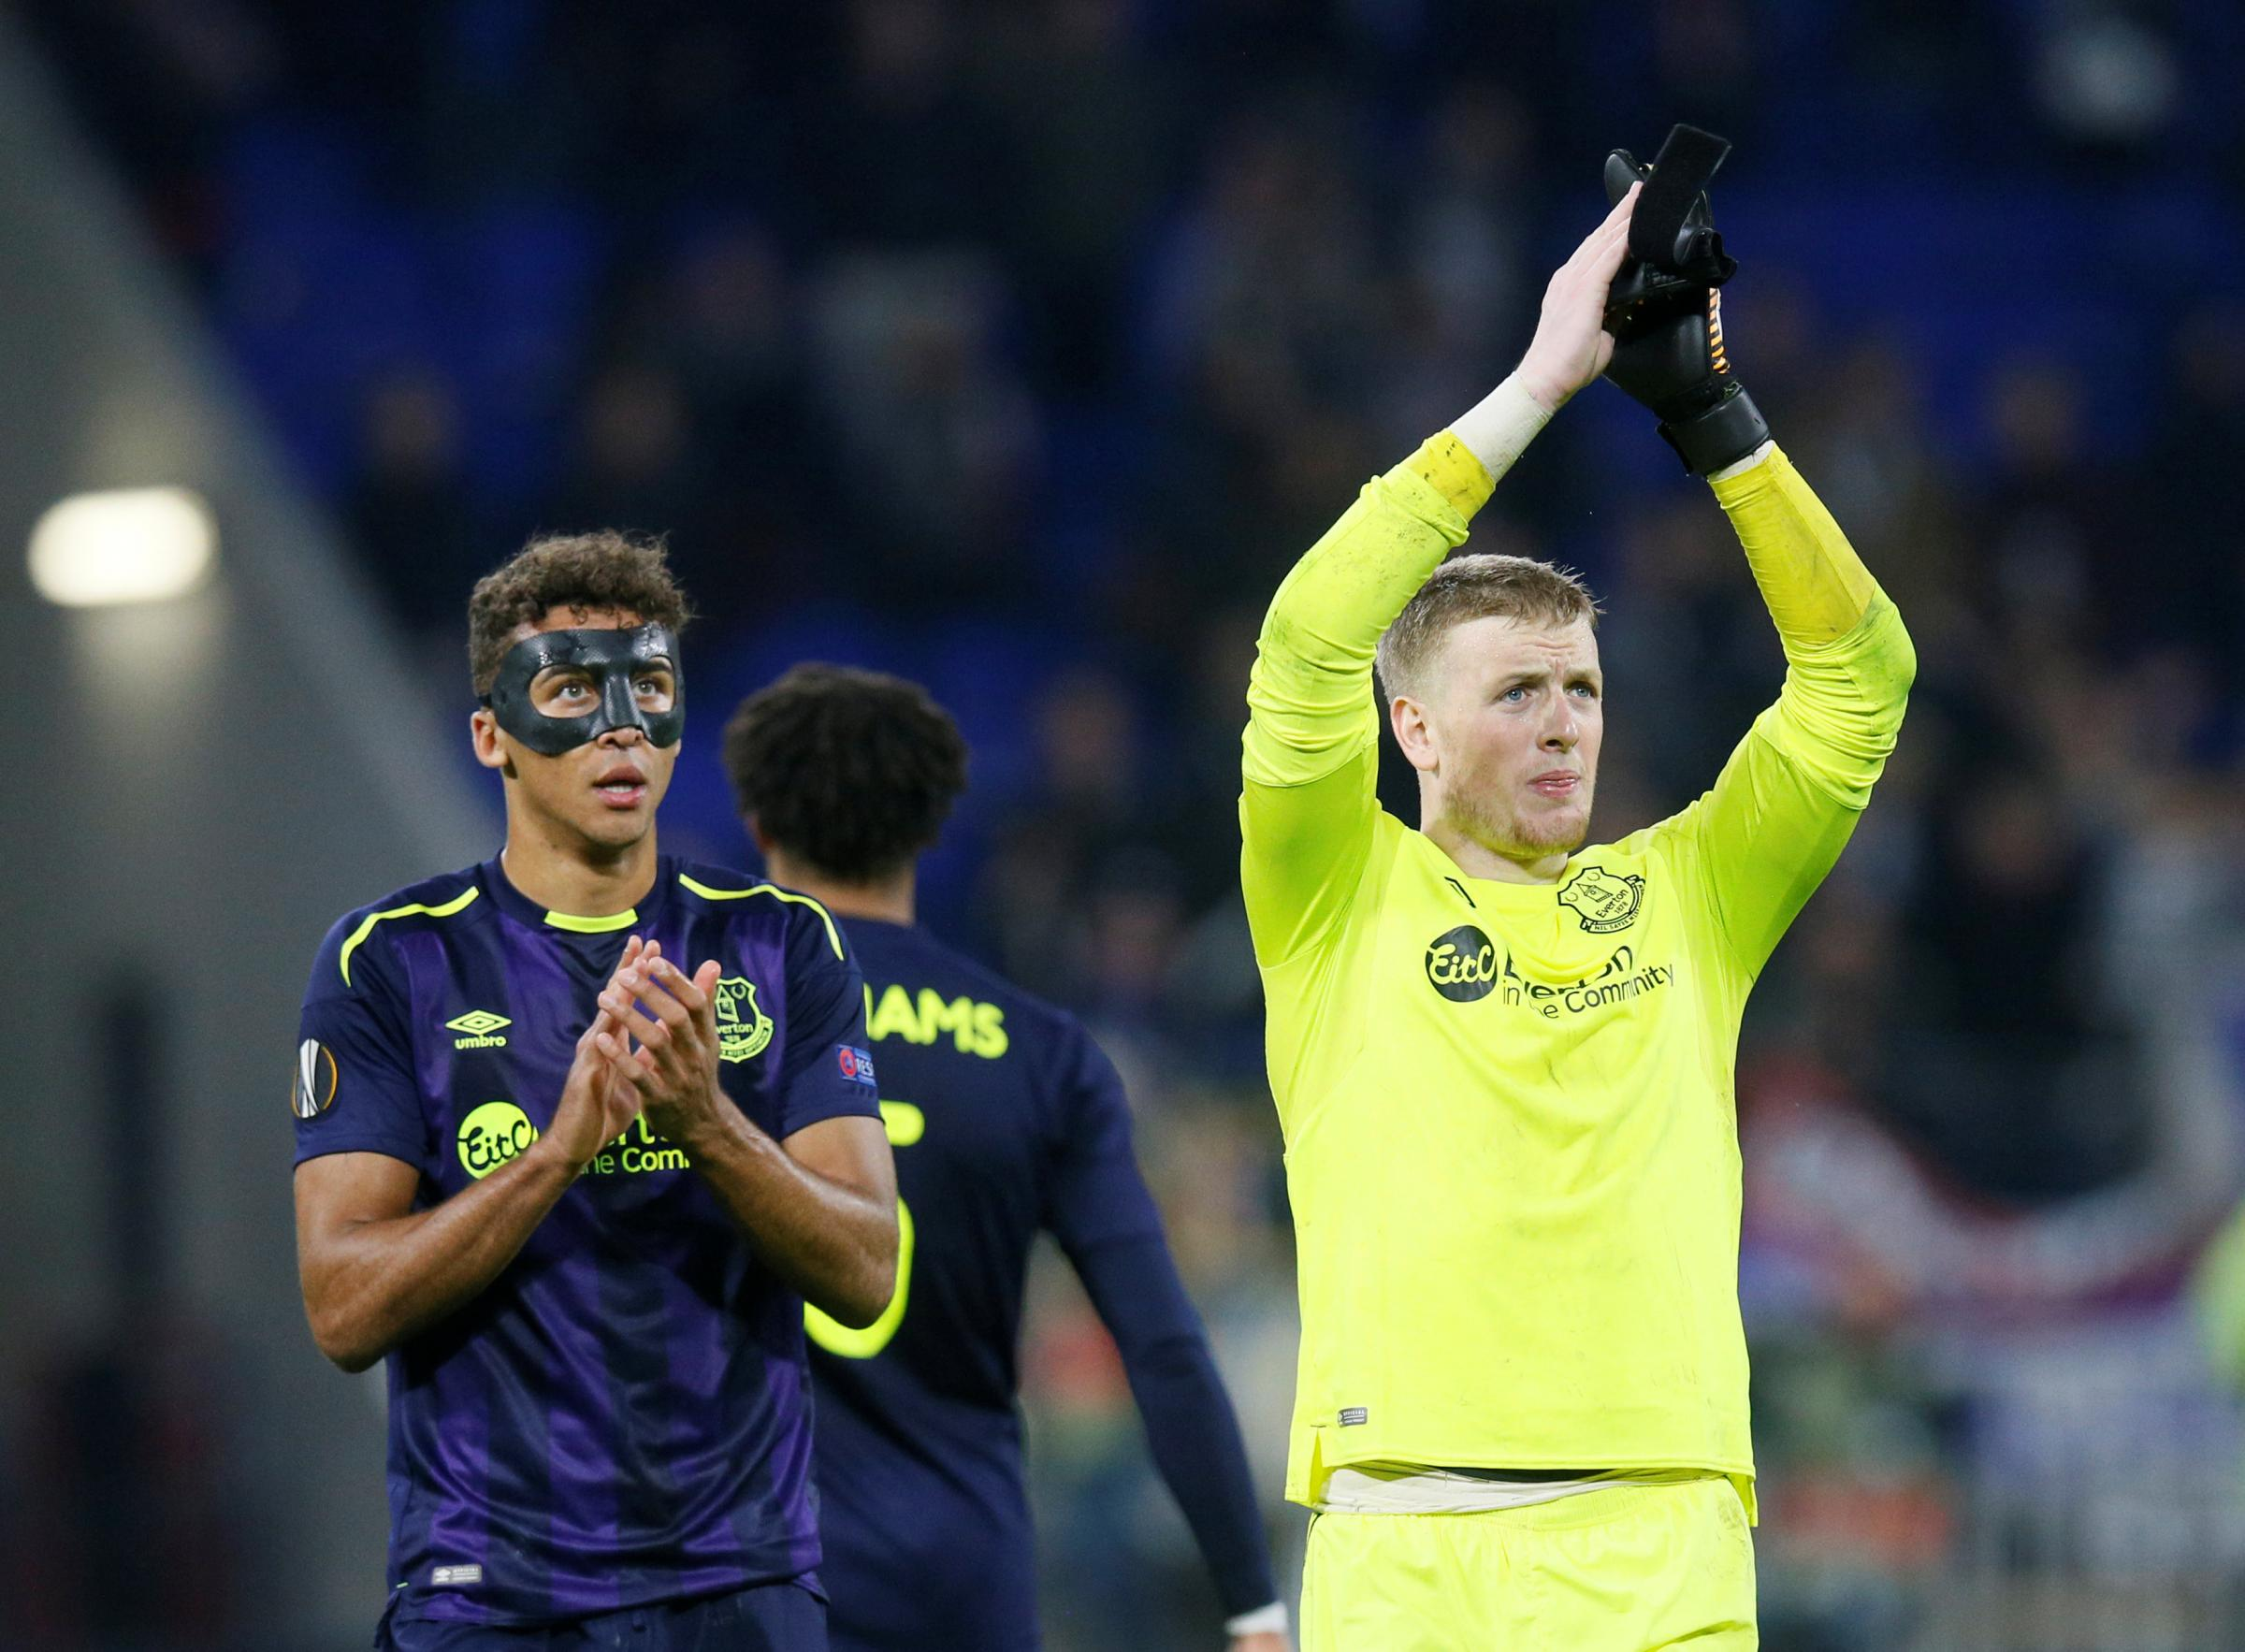 Dominic Calvert-Lewin and Jordan Pickford applaud the Everton fans following yesterday's Europa League exit. Picture: Action Images